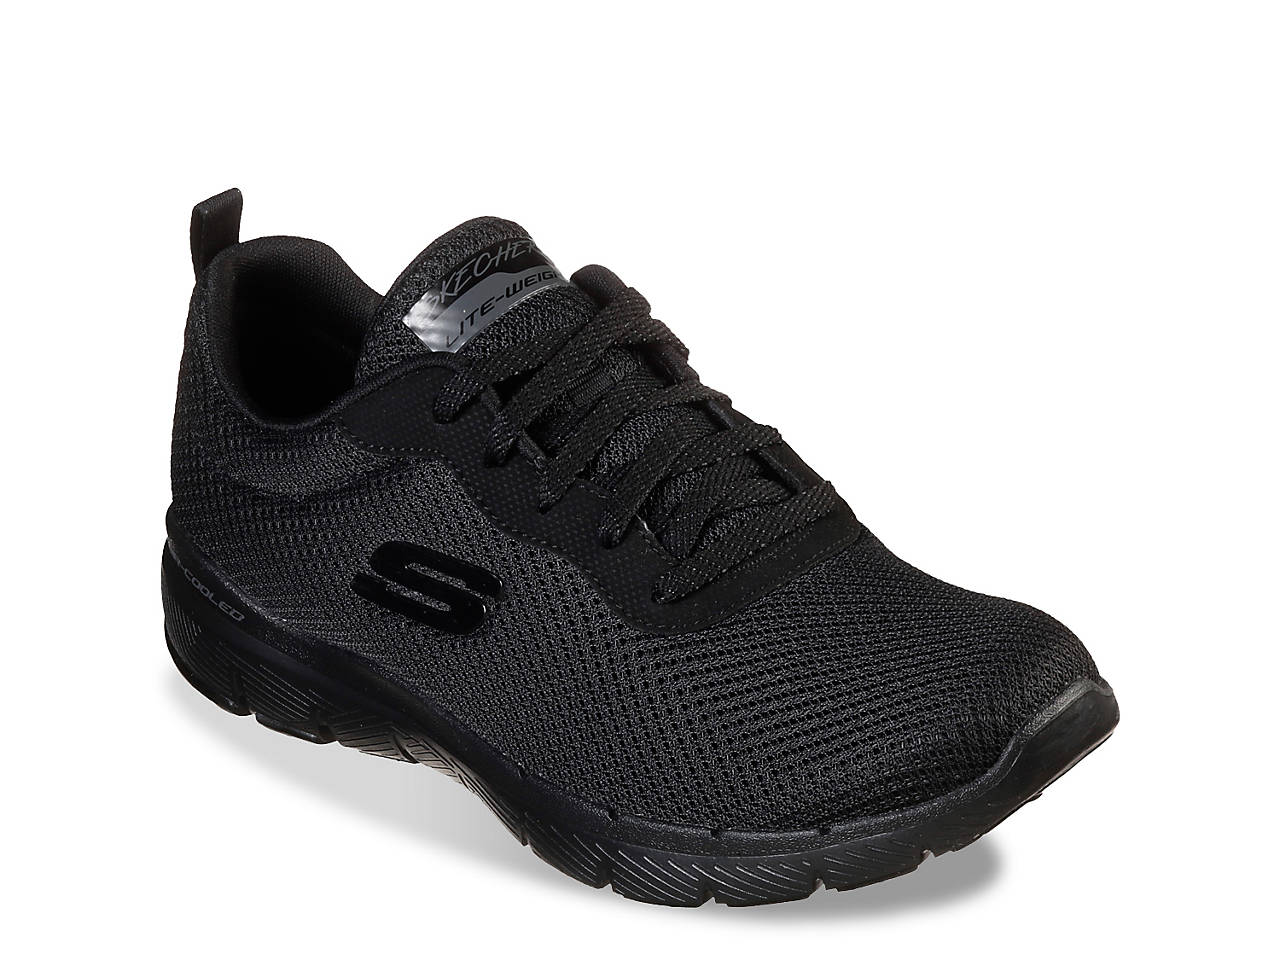 59facfa38f5 Skechers Flex Appeal 3.0 First Insight Sneaker - Women's Women's ...